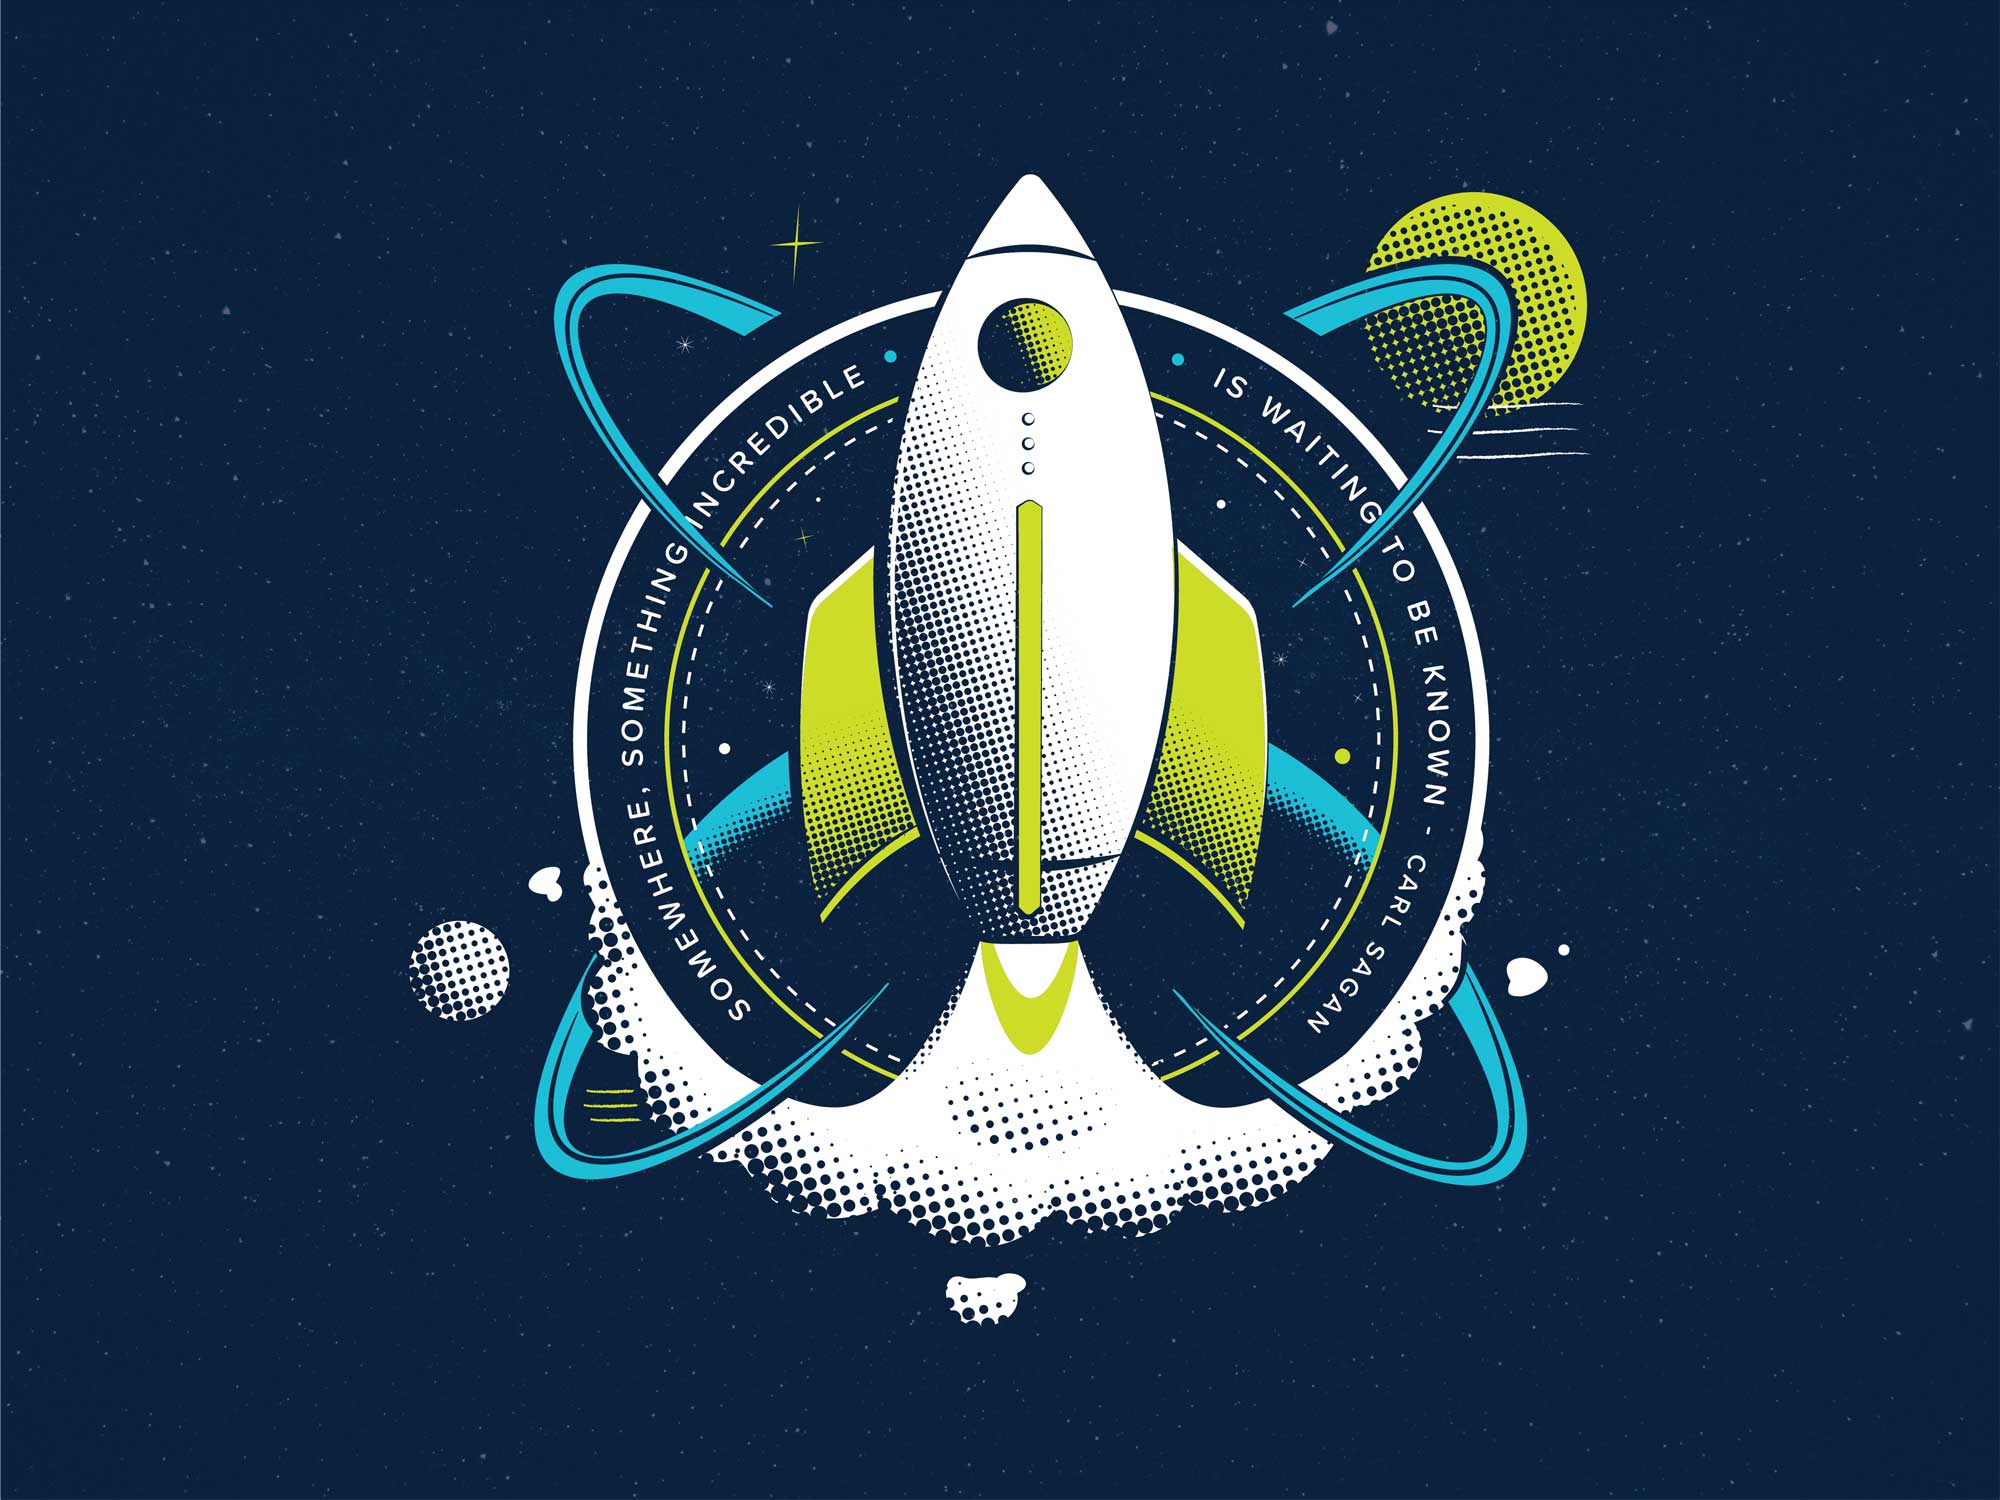 Retro, digital illustration of a rocket in space featuring bright yellow and white on a dark blue sky with halftone shading.